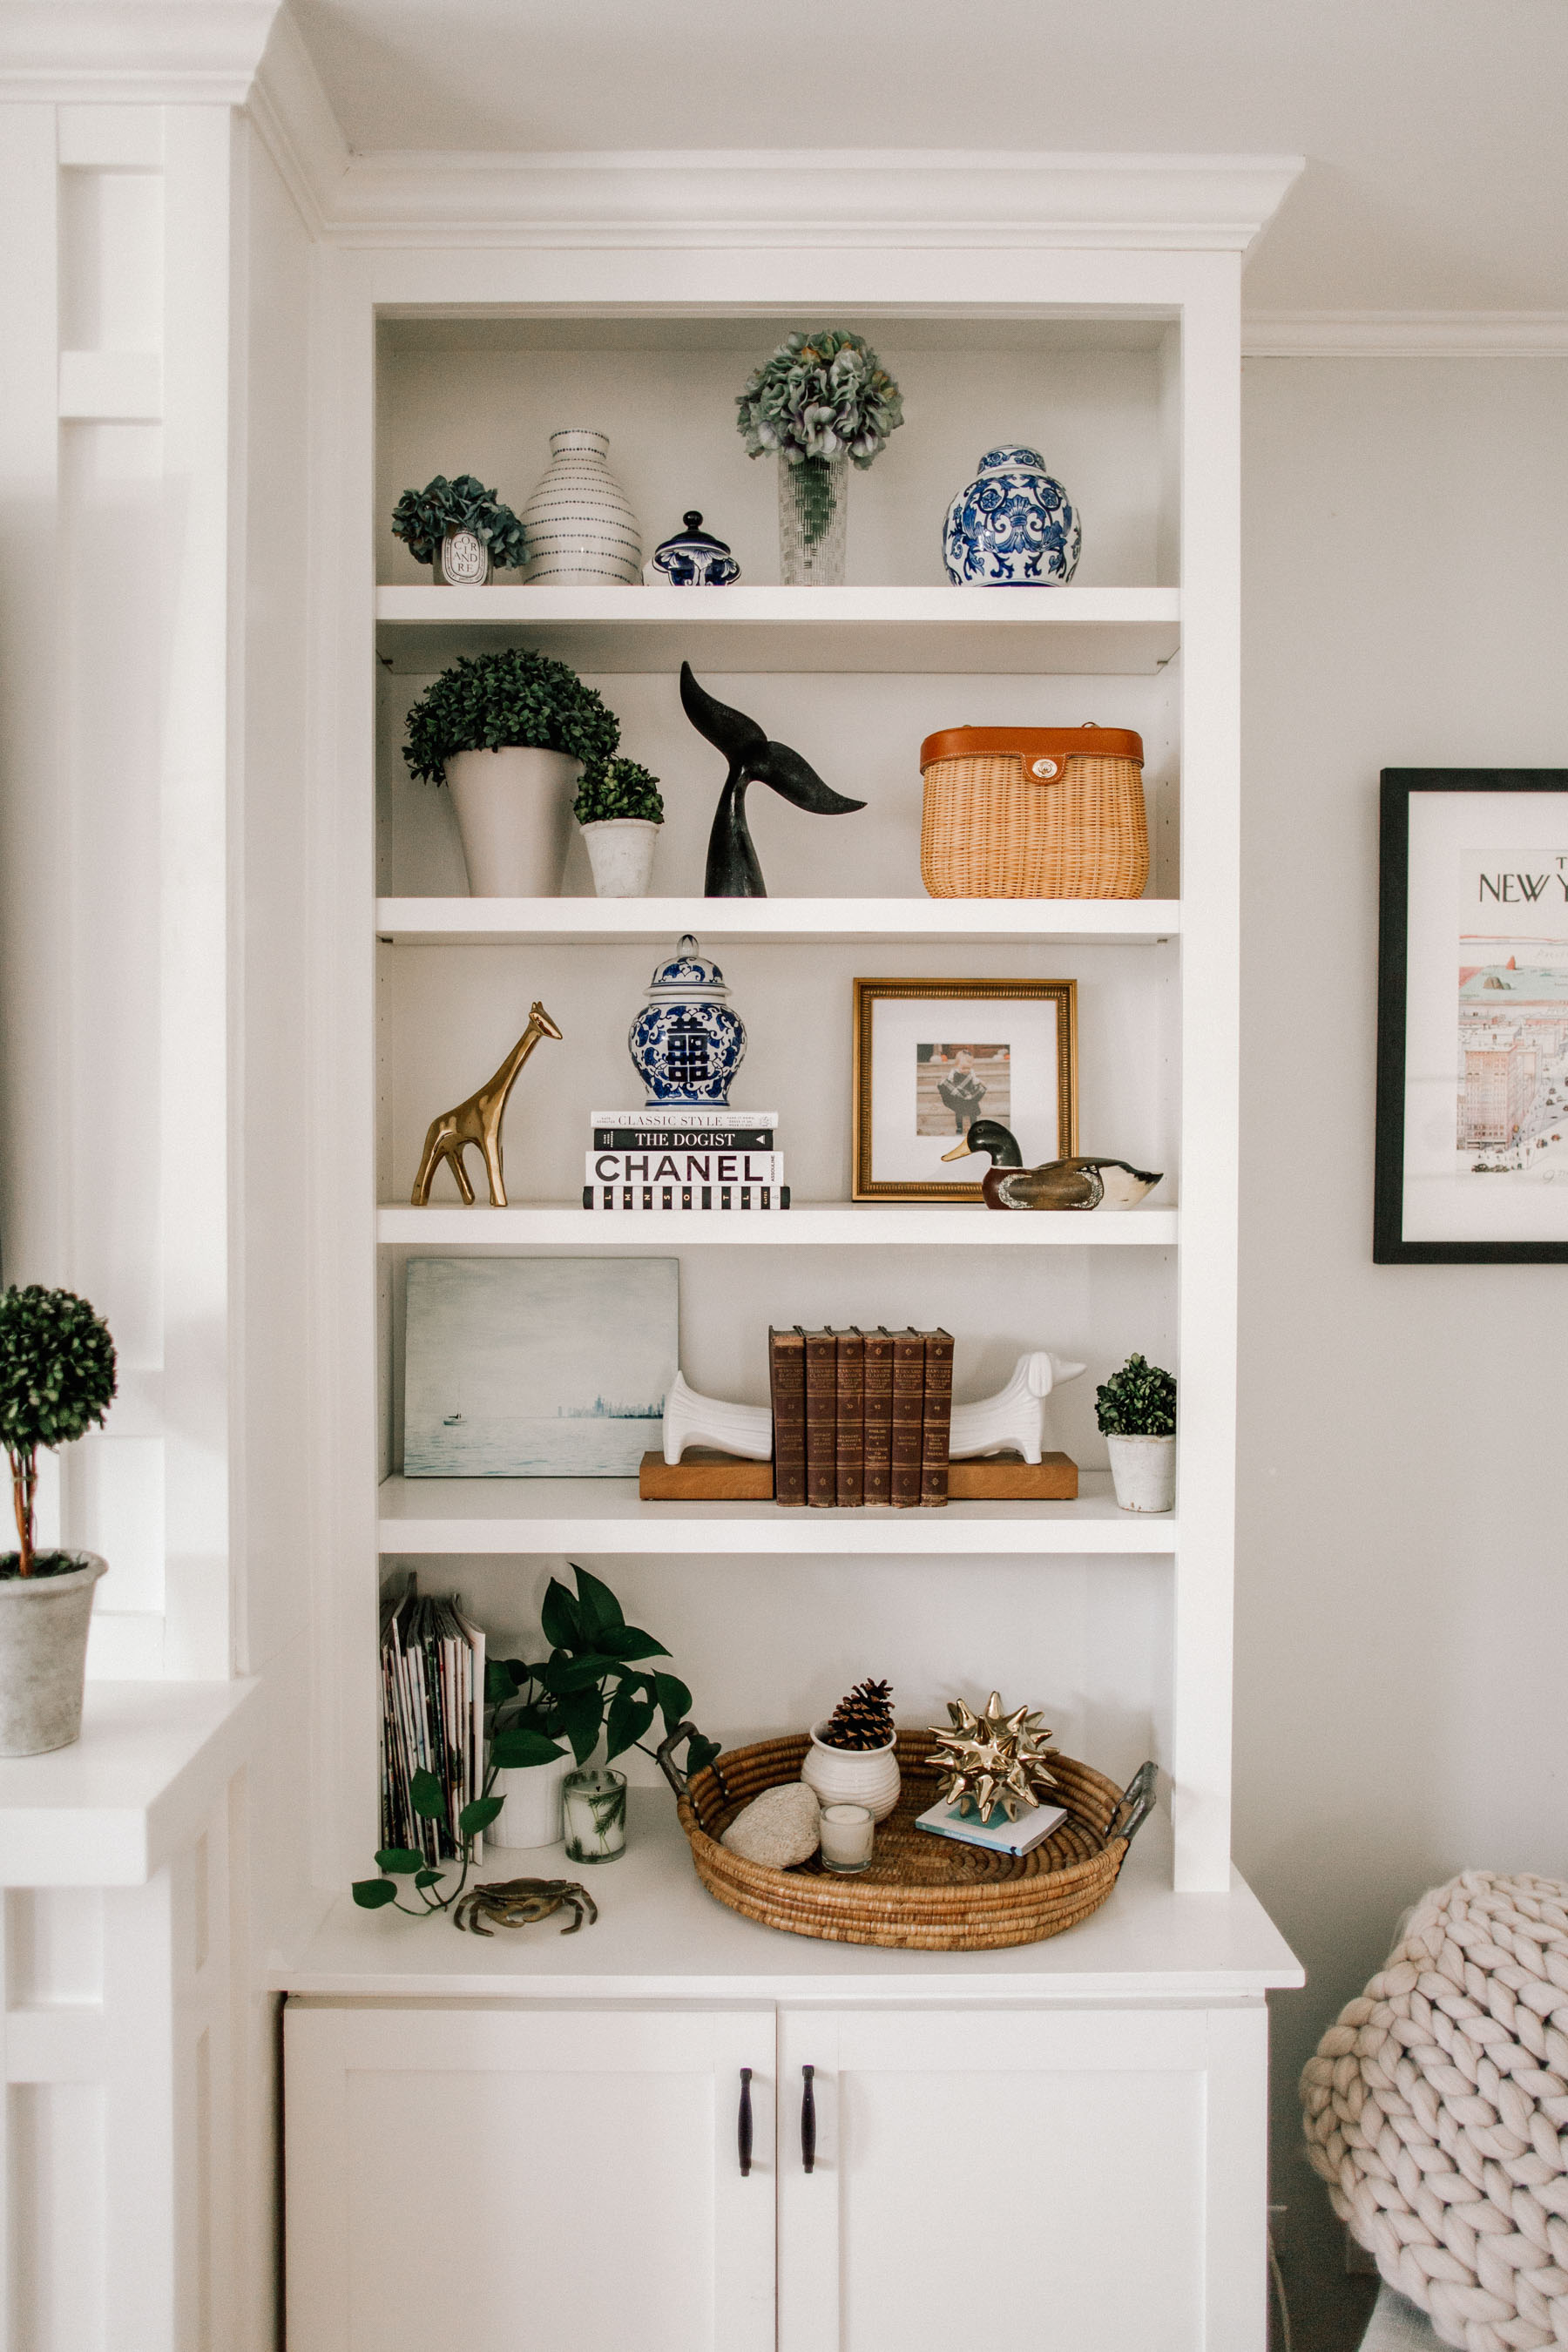 How to Style Preppy Bookshelves